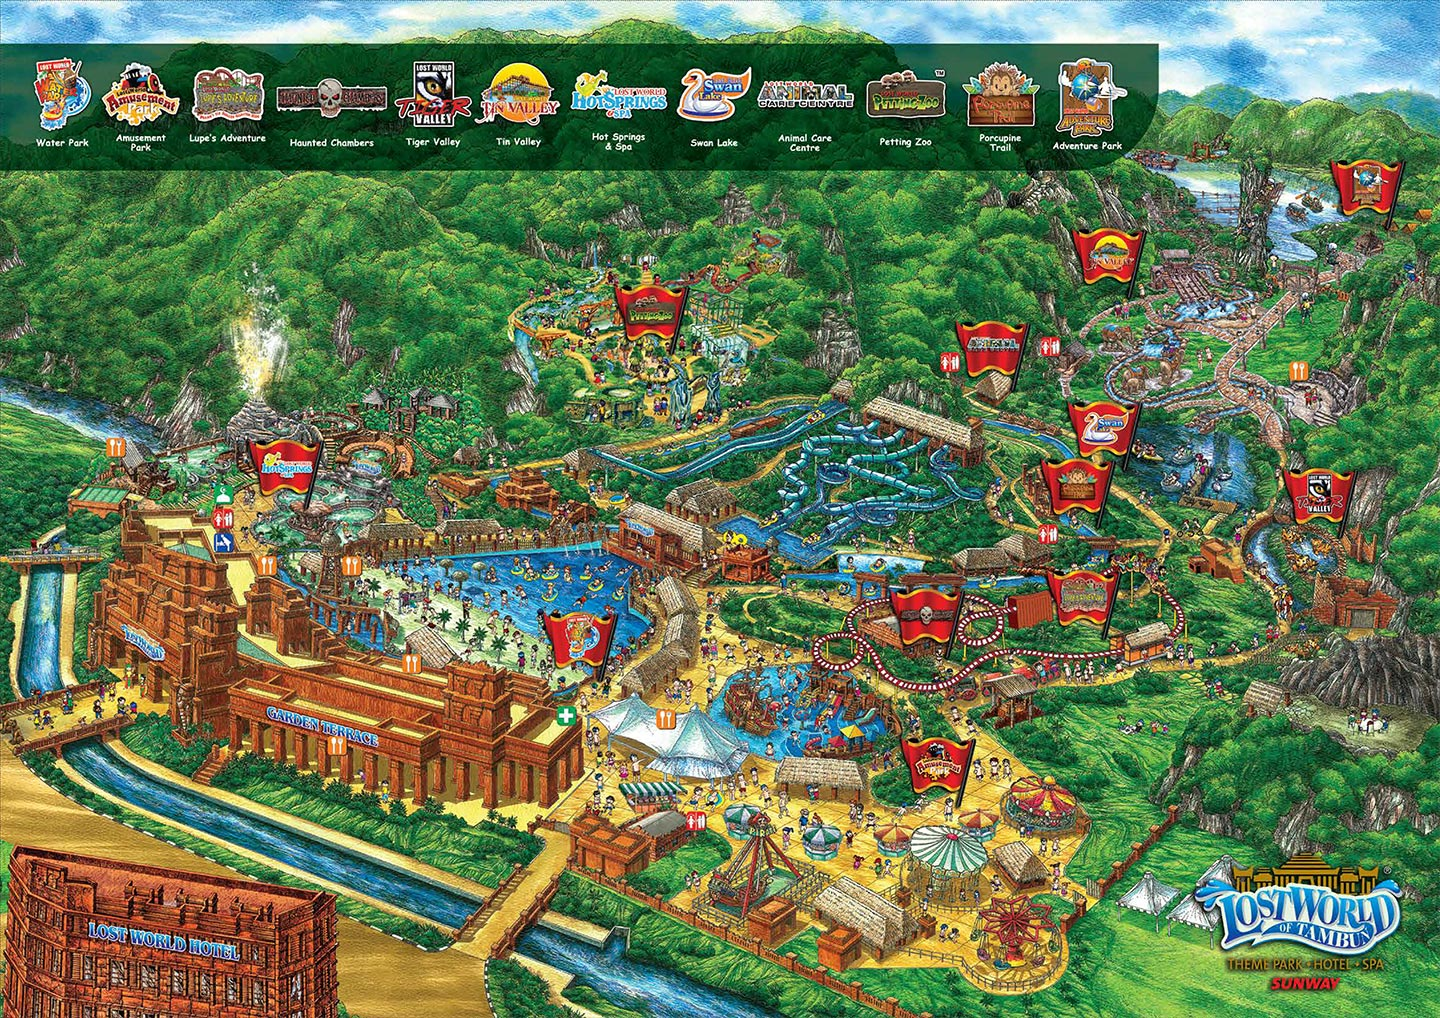 Парк мира Park Map Lost World Of Tambun Theme Park